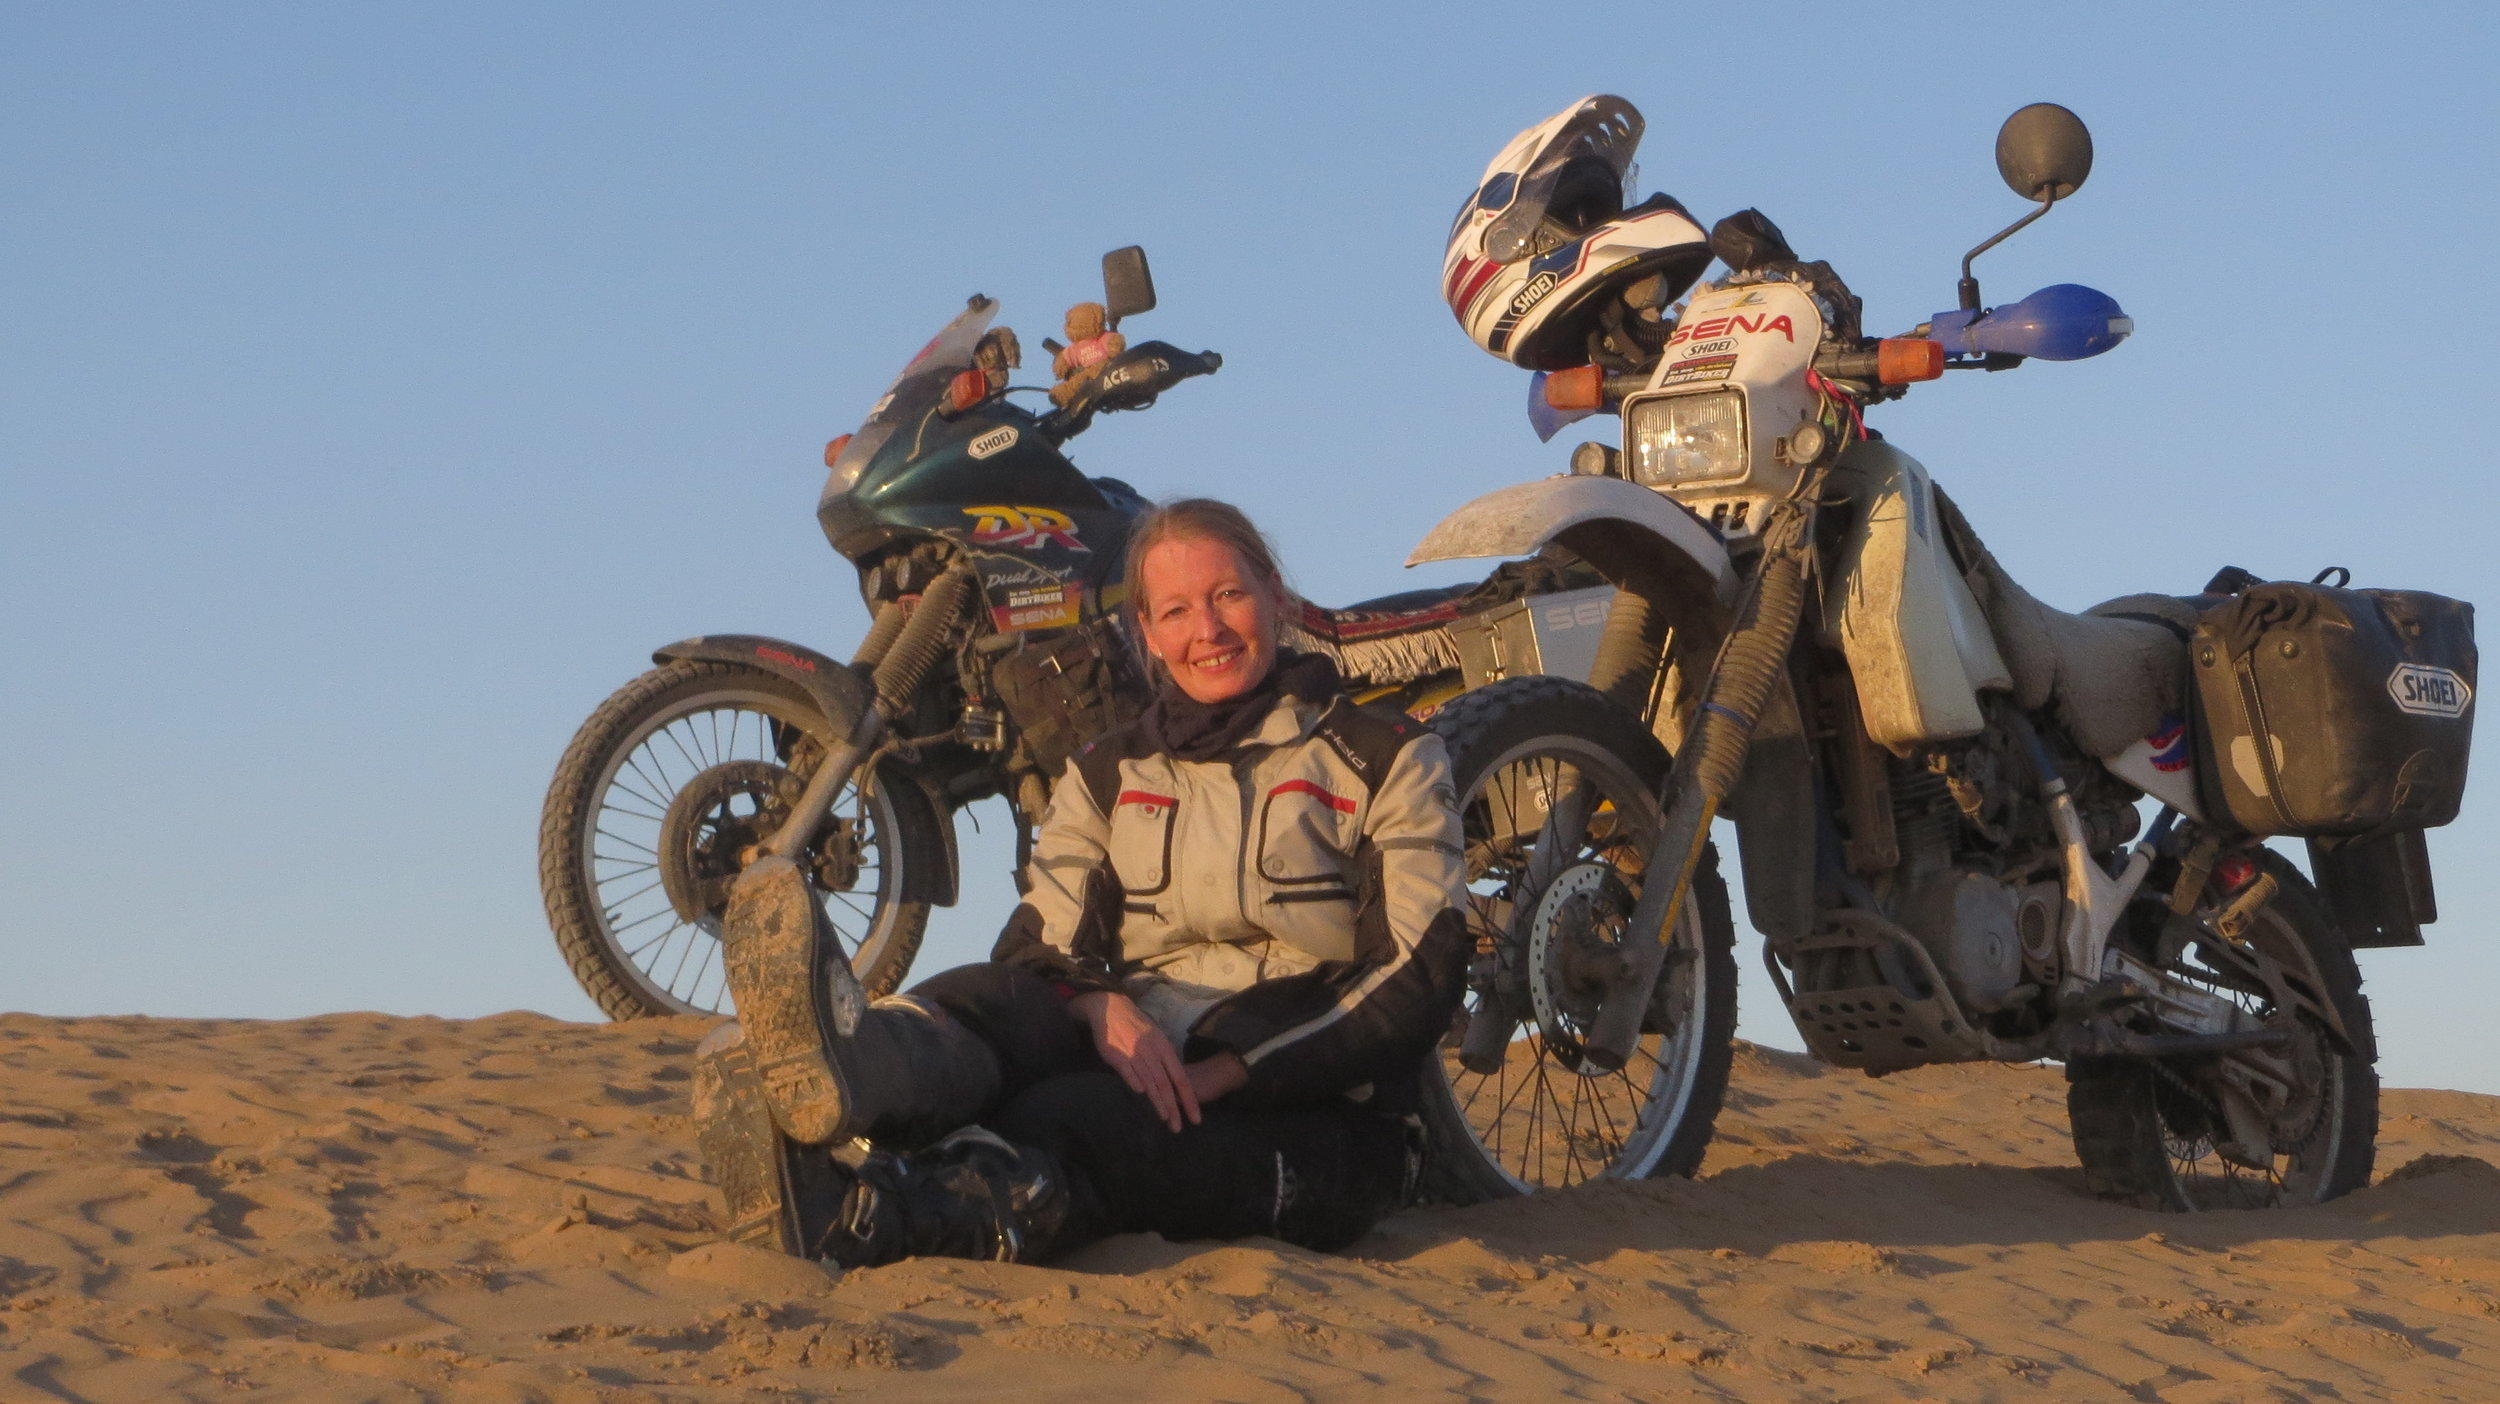 Jan-Silke-Neumann-Adventure-Rider-Radio-Motorcycle-Podcast-1.JPG